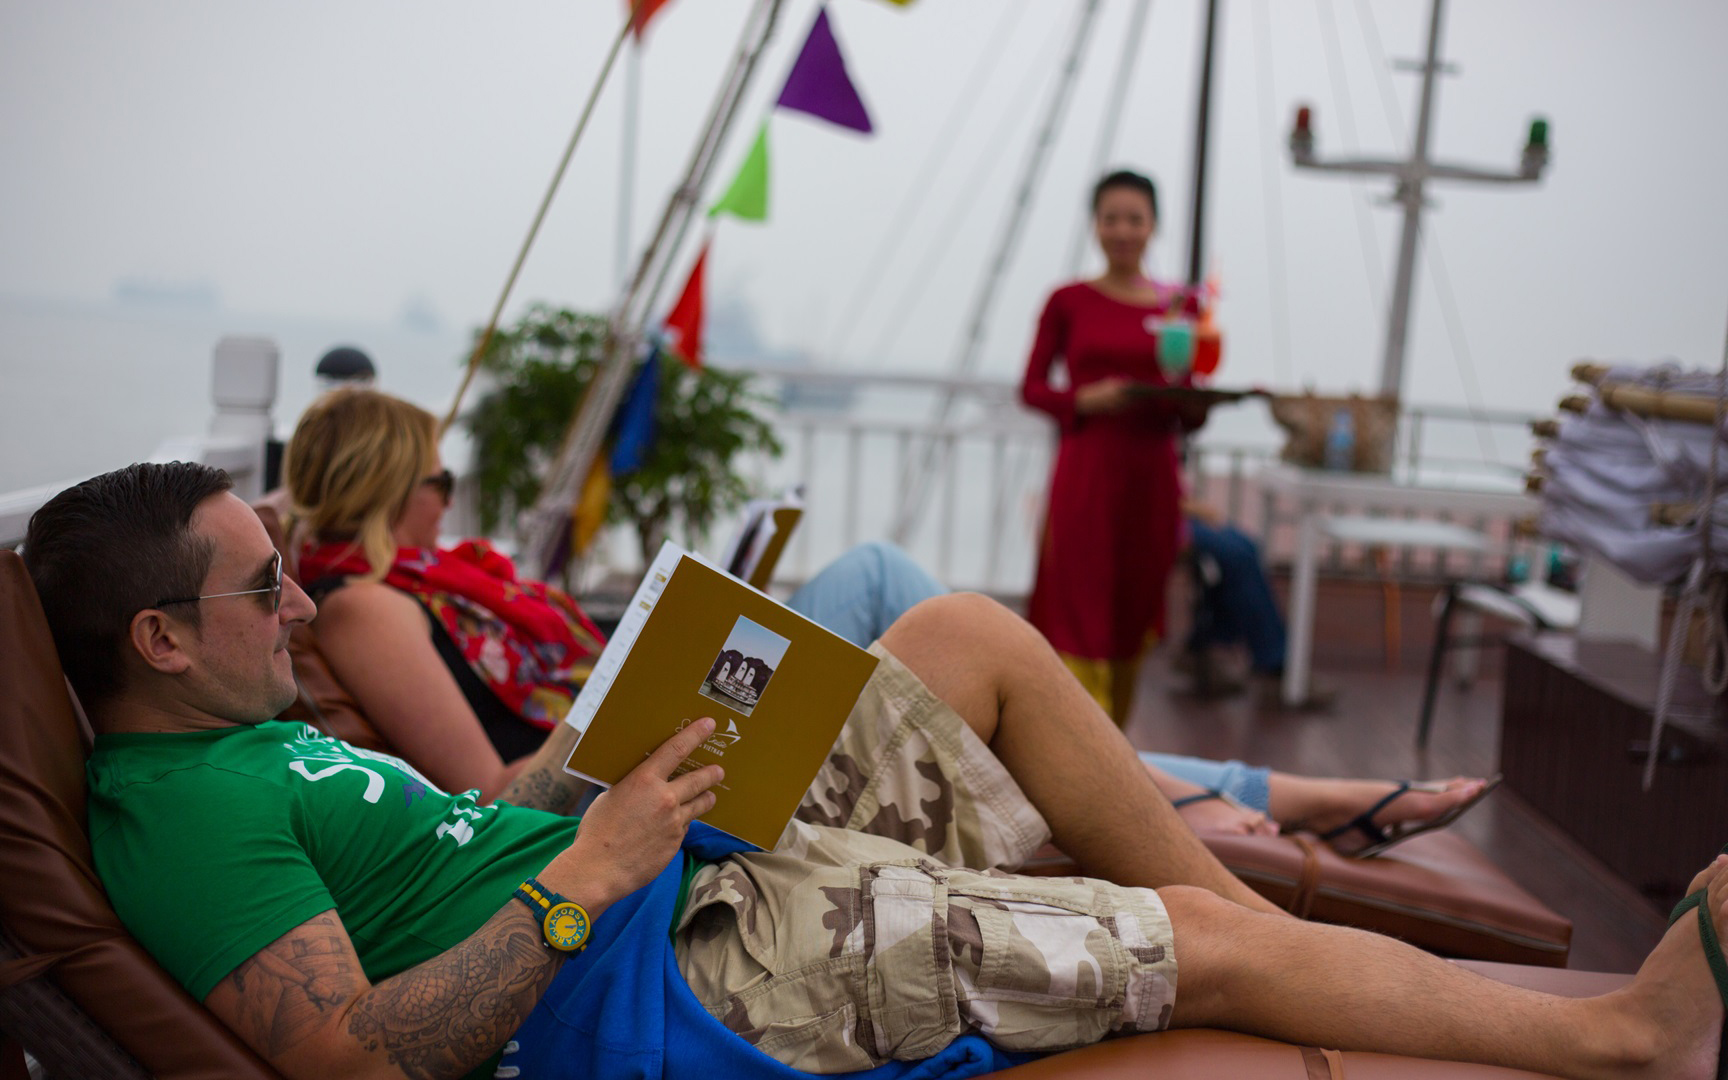 sundeck-on-signature-halong-cruise